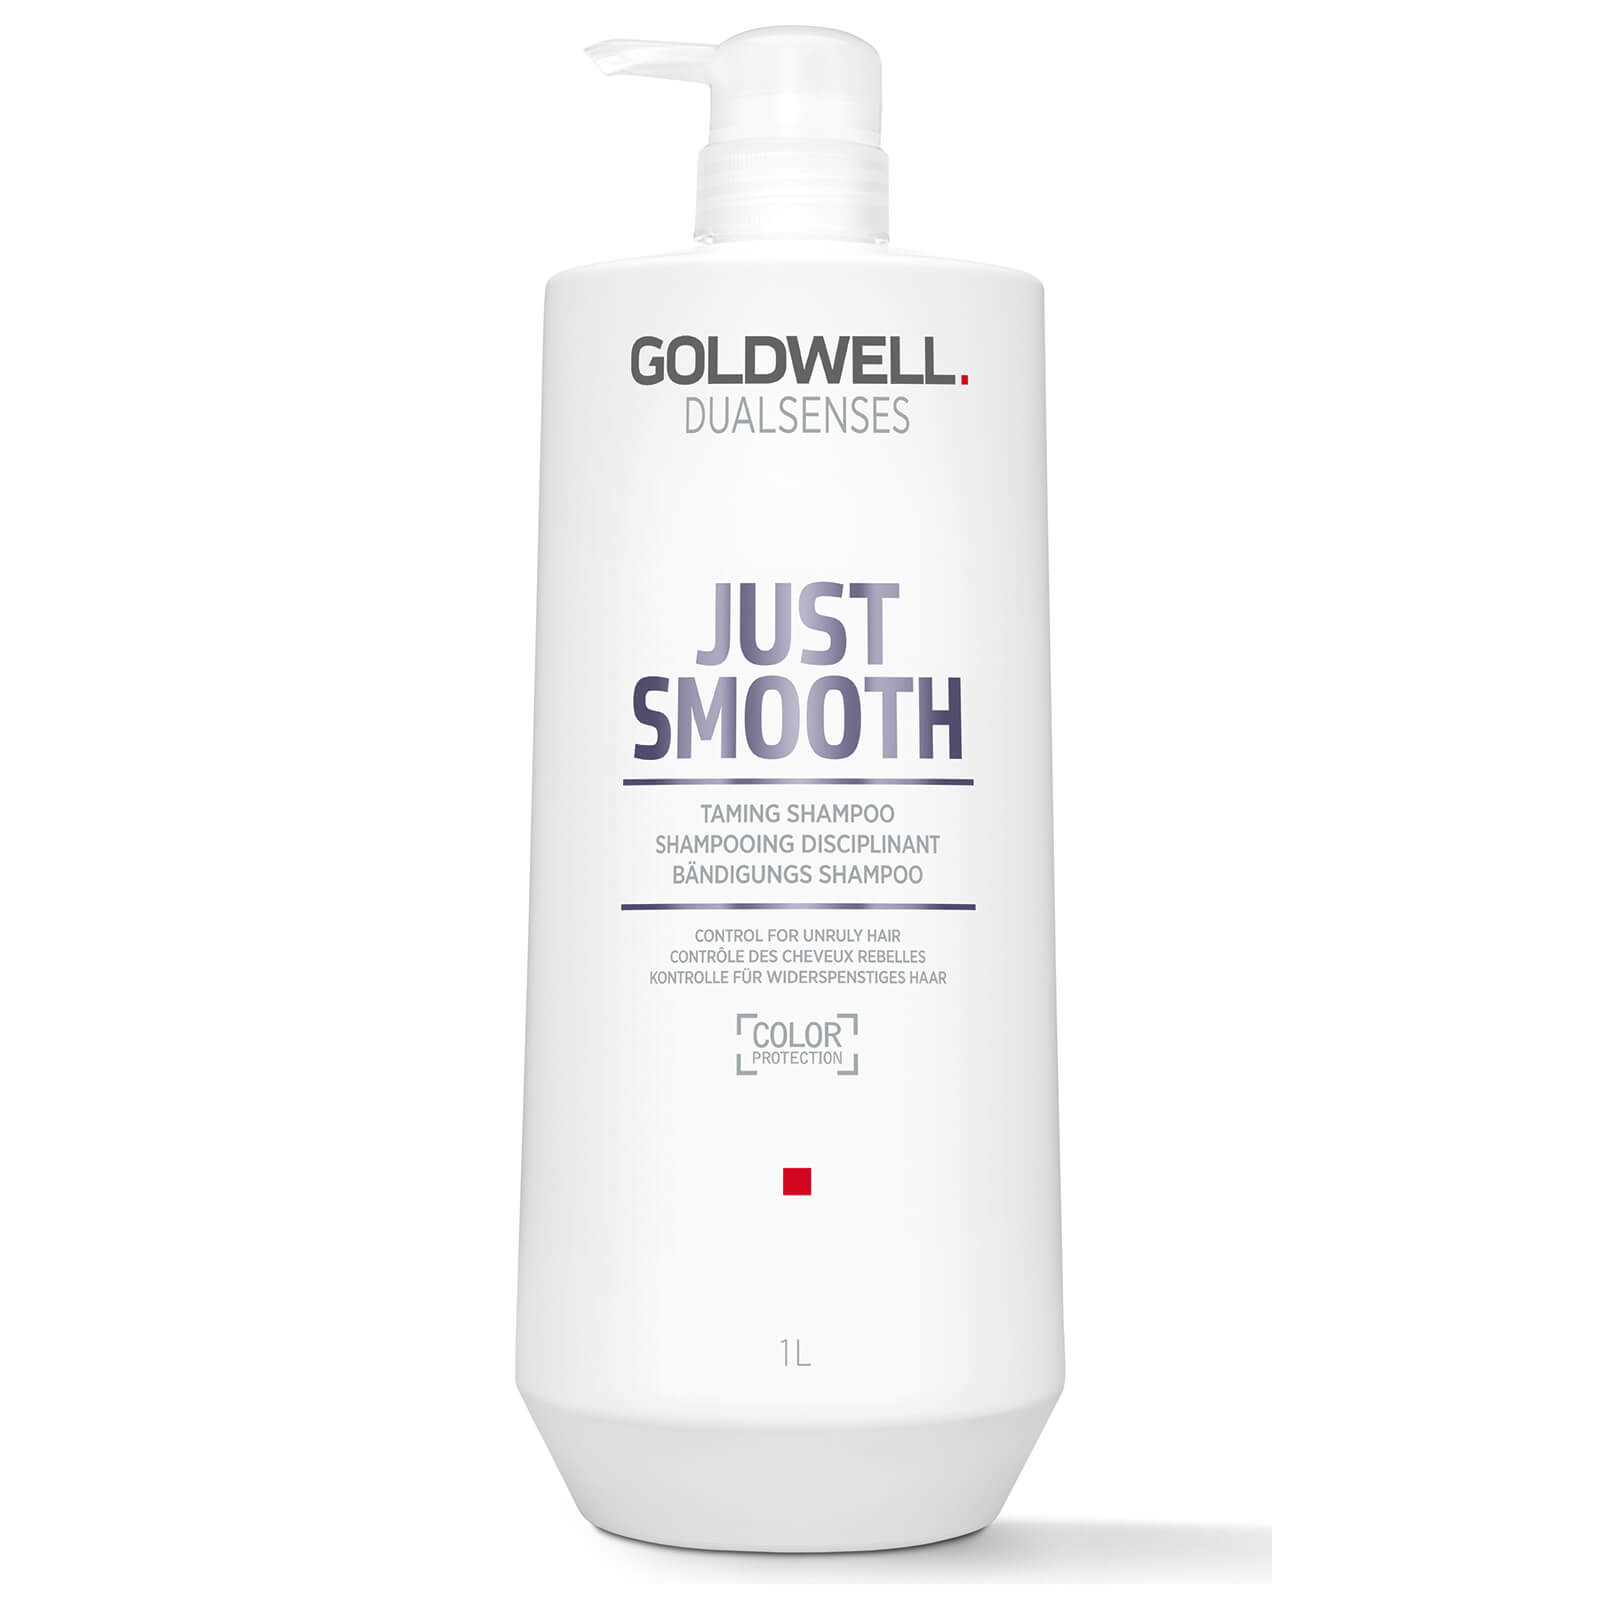 Goldwell Dualsenses Just Smooth Taming Shampoo 1000ml Beautyexpert Twin Pack Kit Wiper Fluid Pouch 400ml X 2pcs